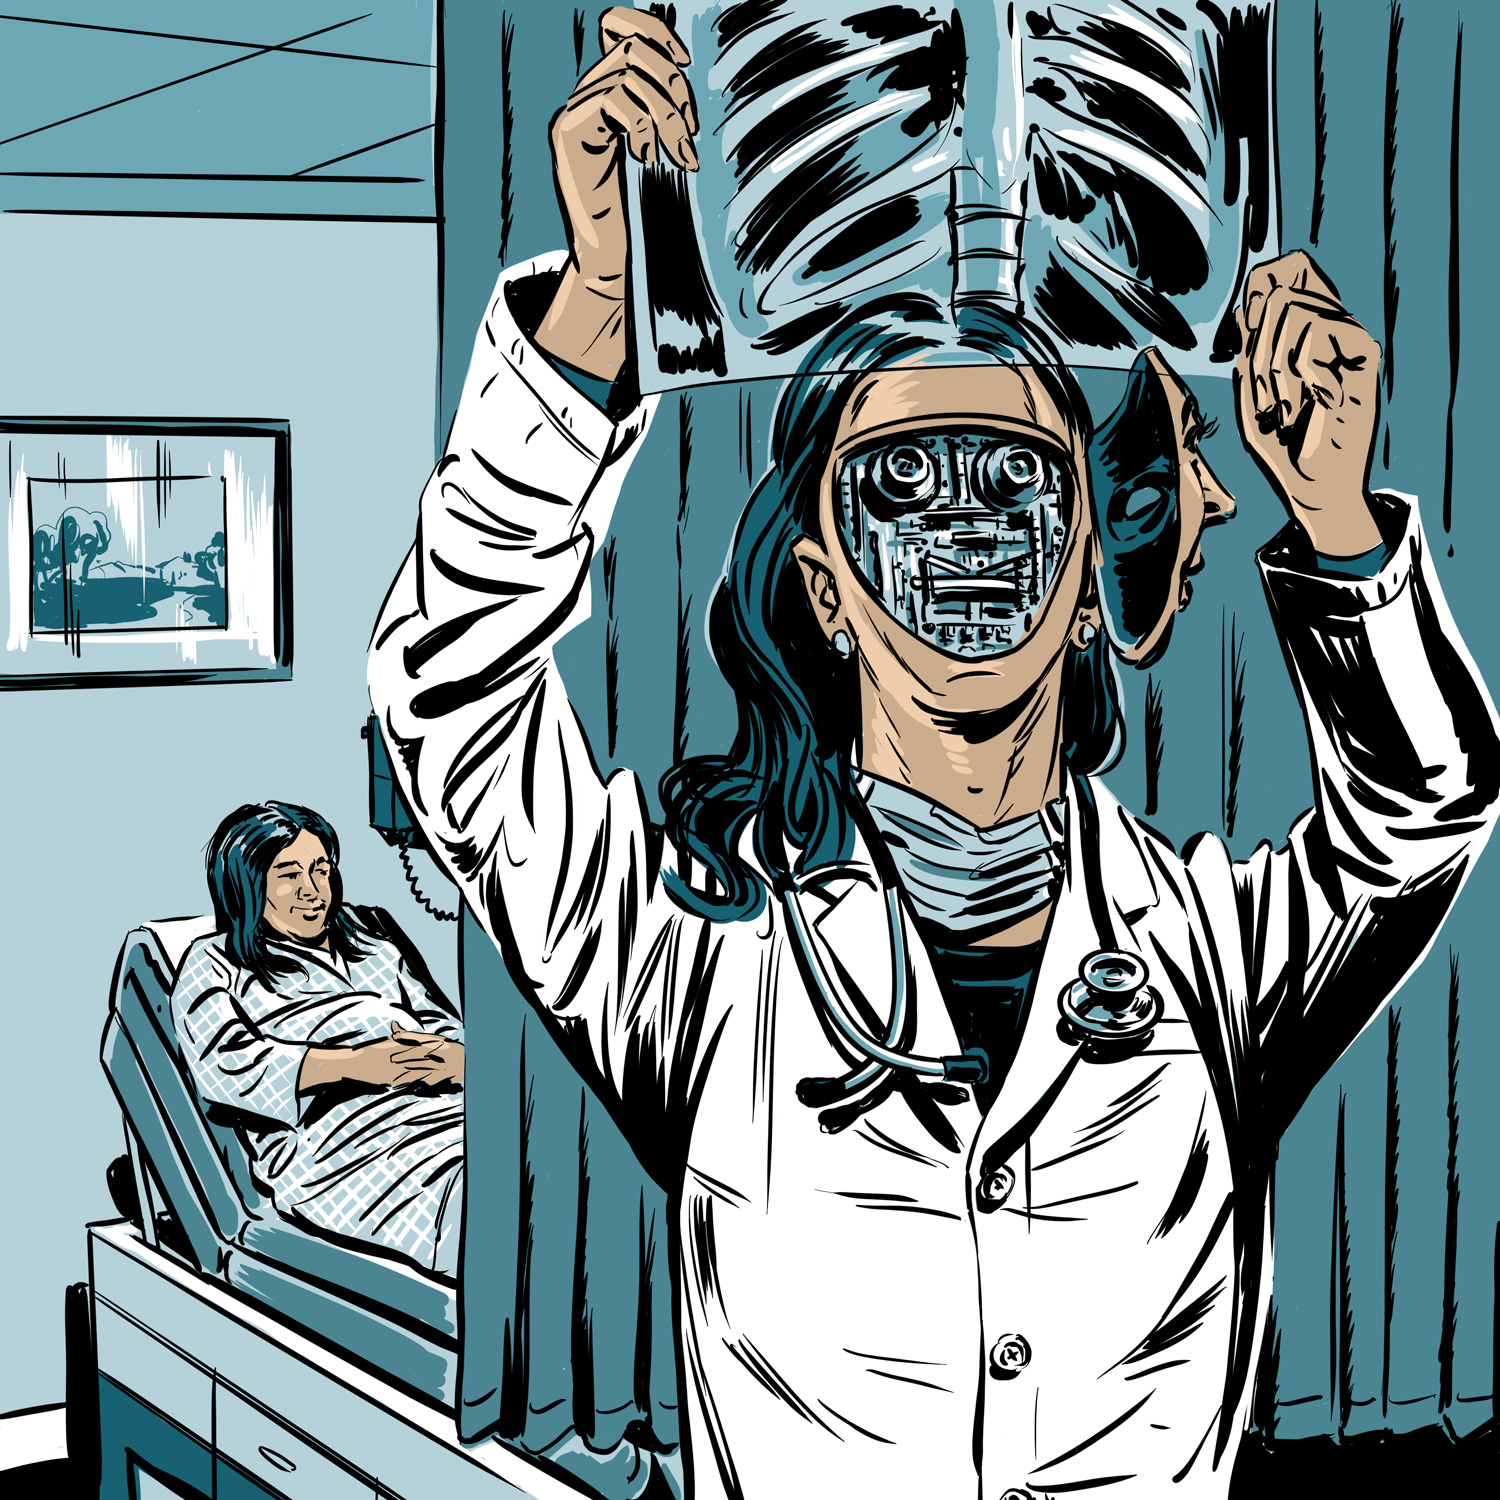 A female doctor looks at an X-Ray. Her face is opened to reveal that she is a robot. A patient lies in a hosptail bed in the background. Colors are shades of teal blue, black and white.